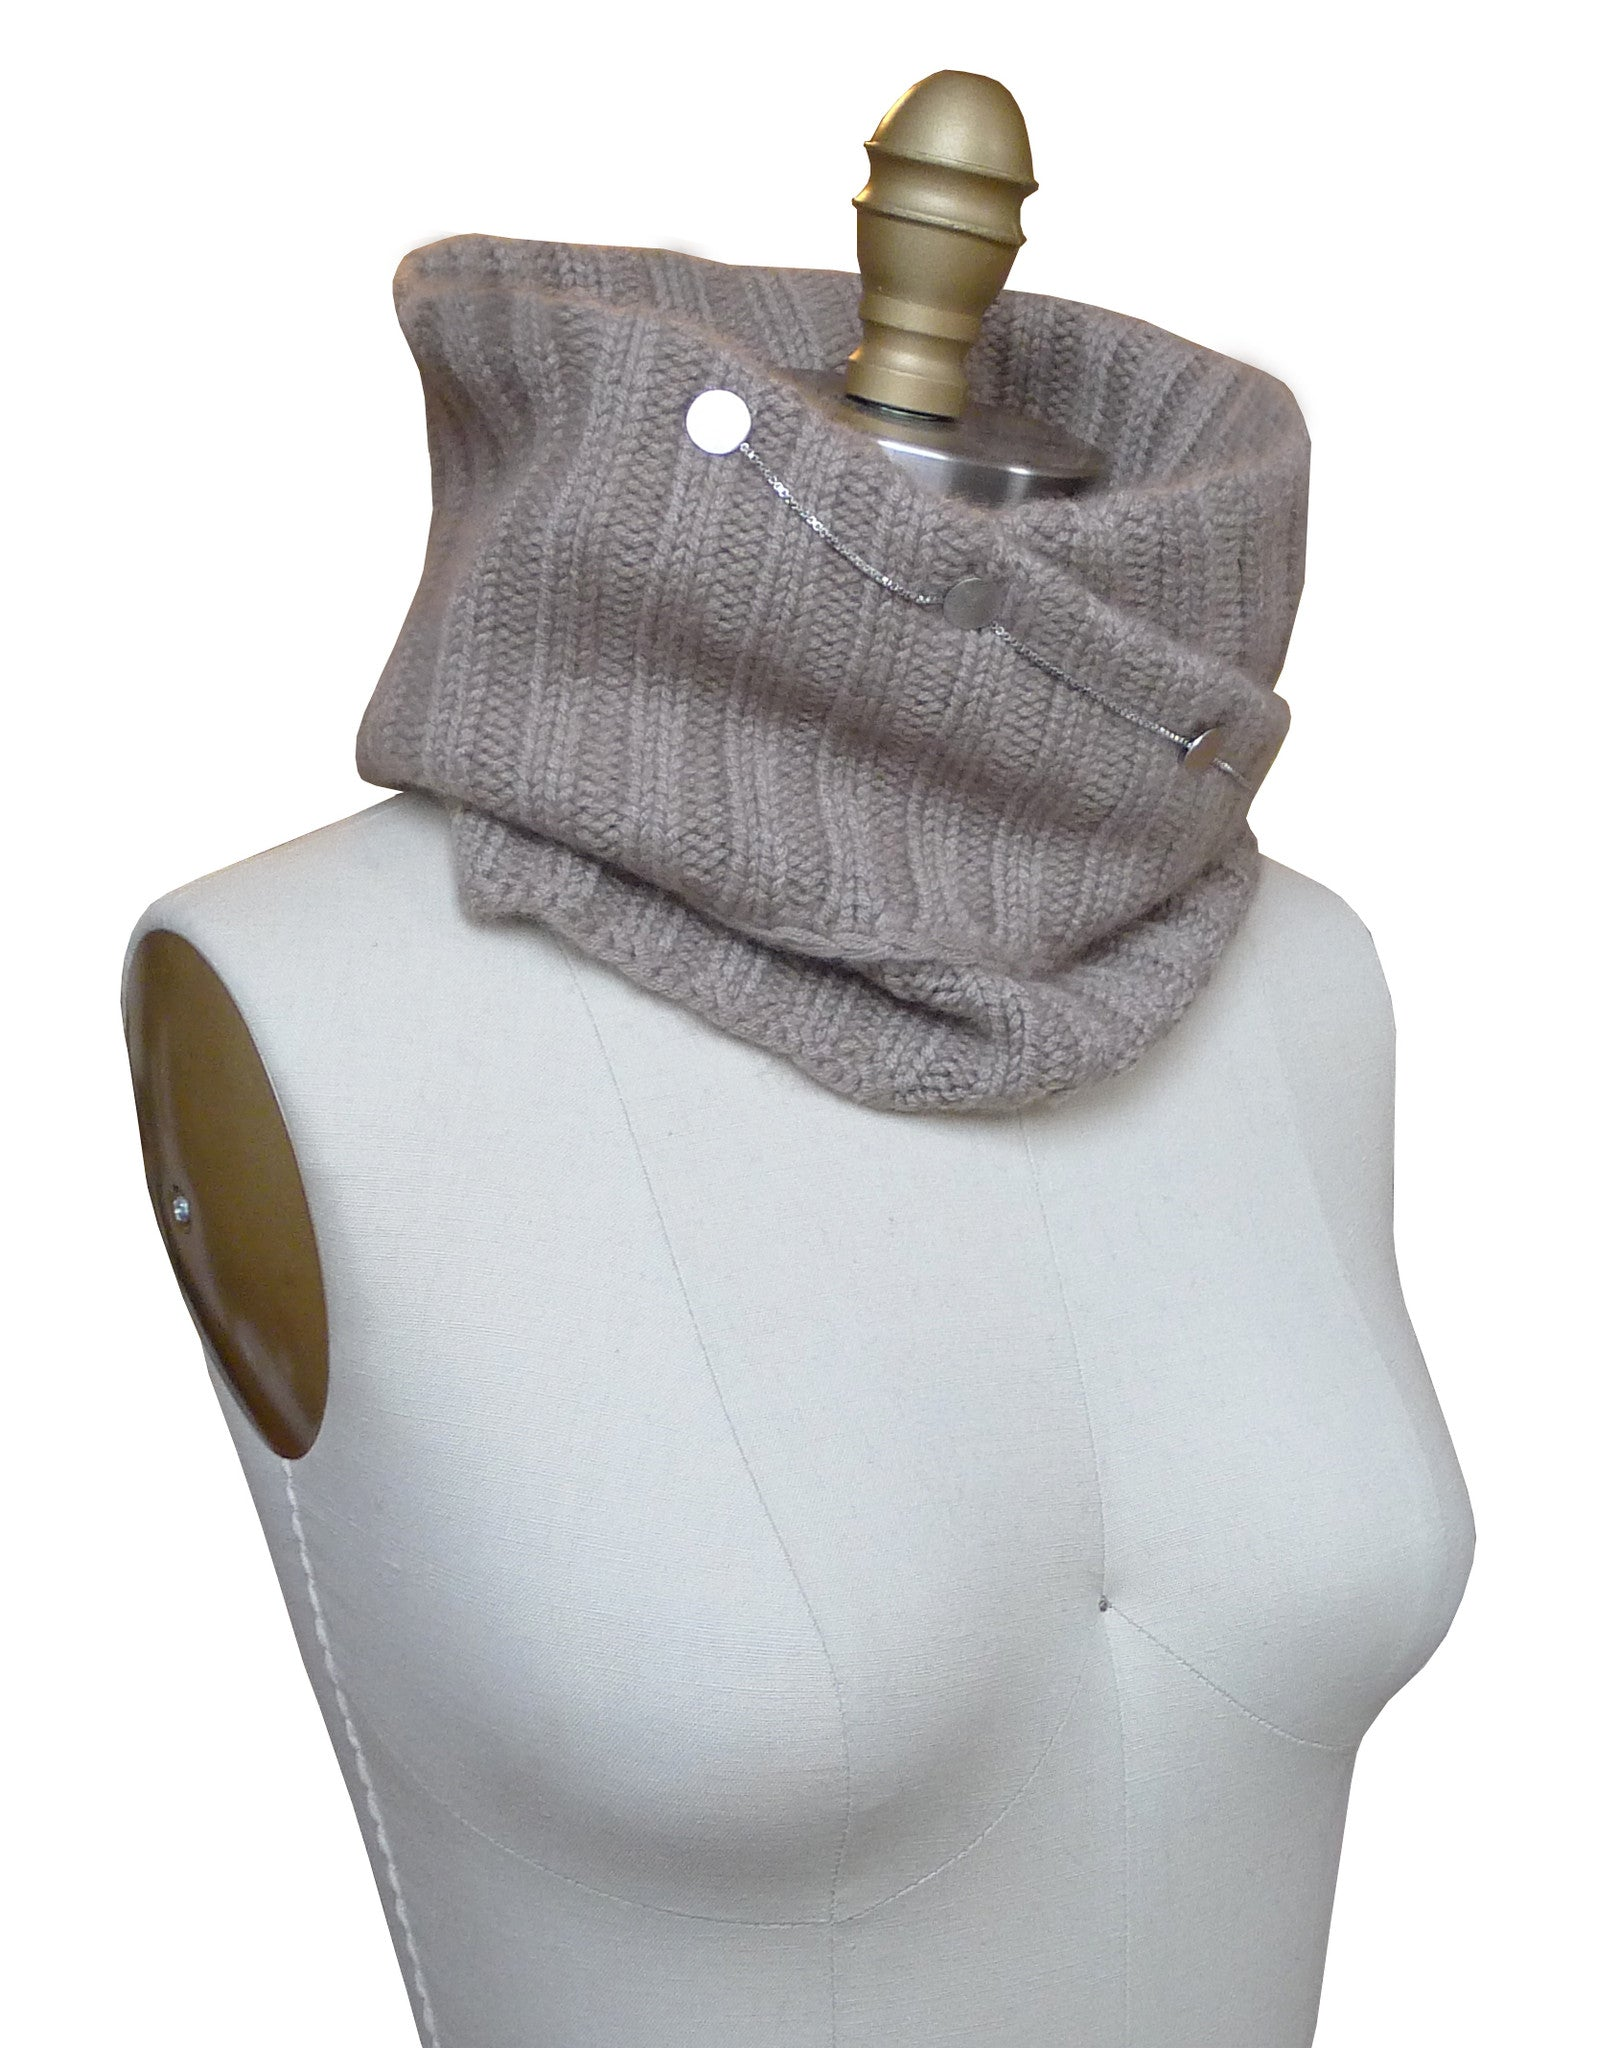 Knit Neckwarmer with Button Chain - 2.5 gauge